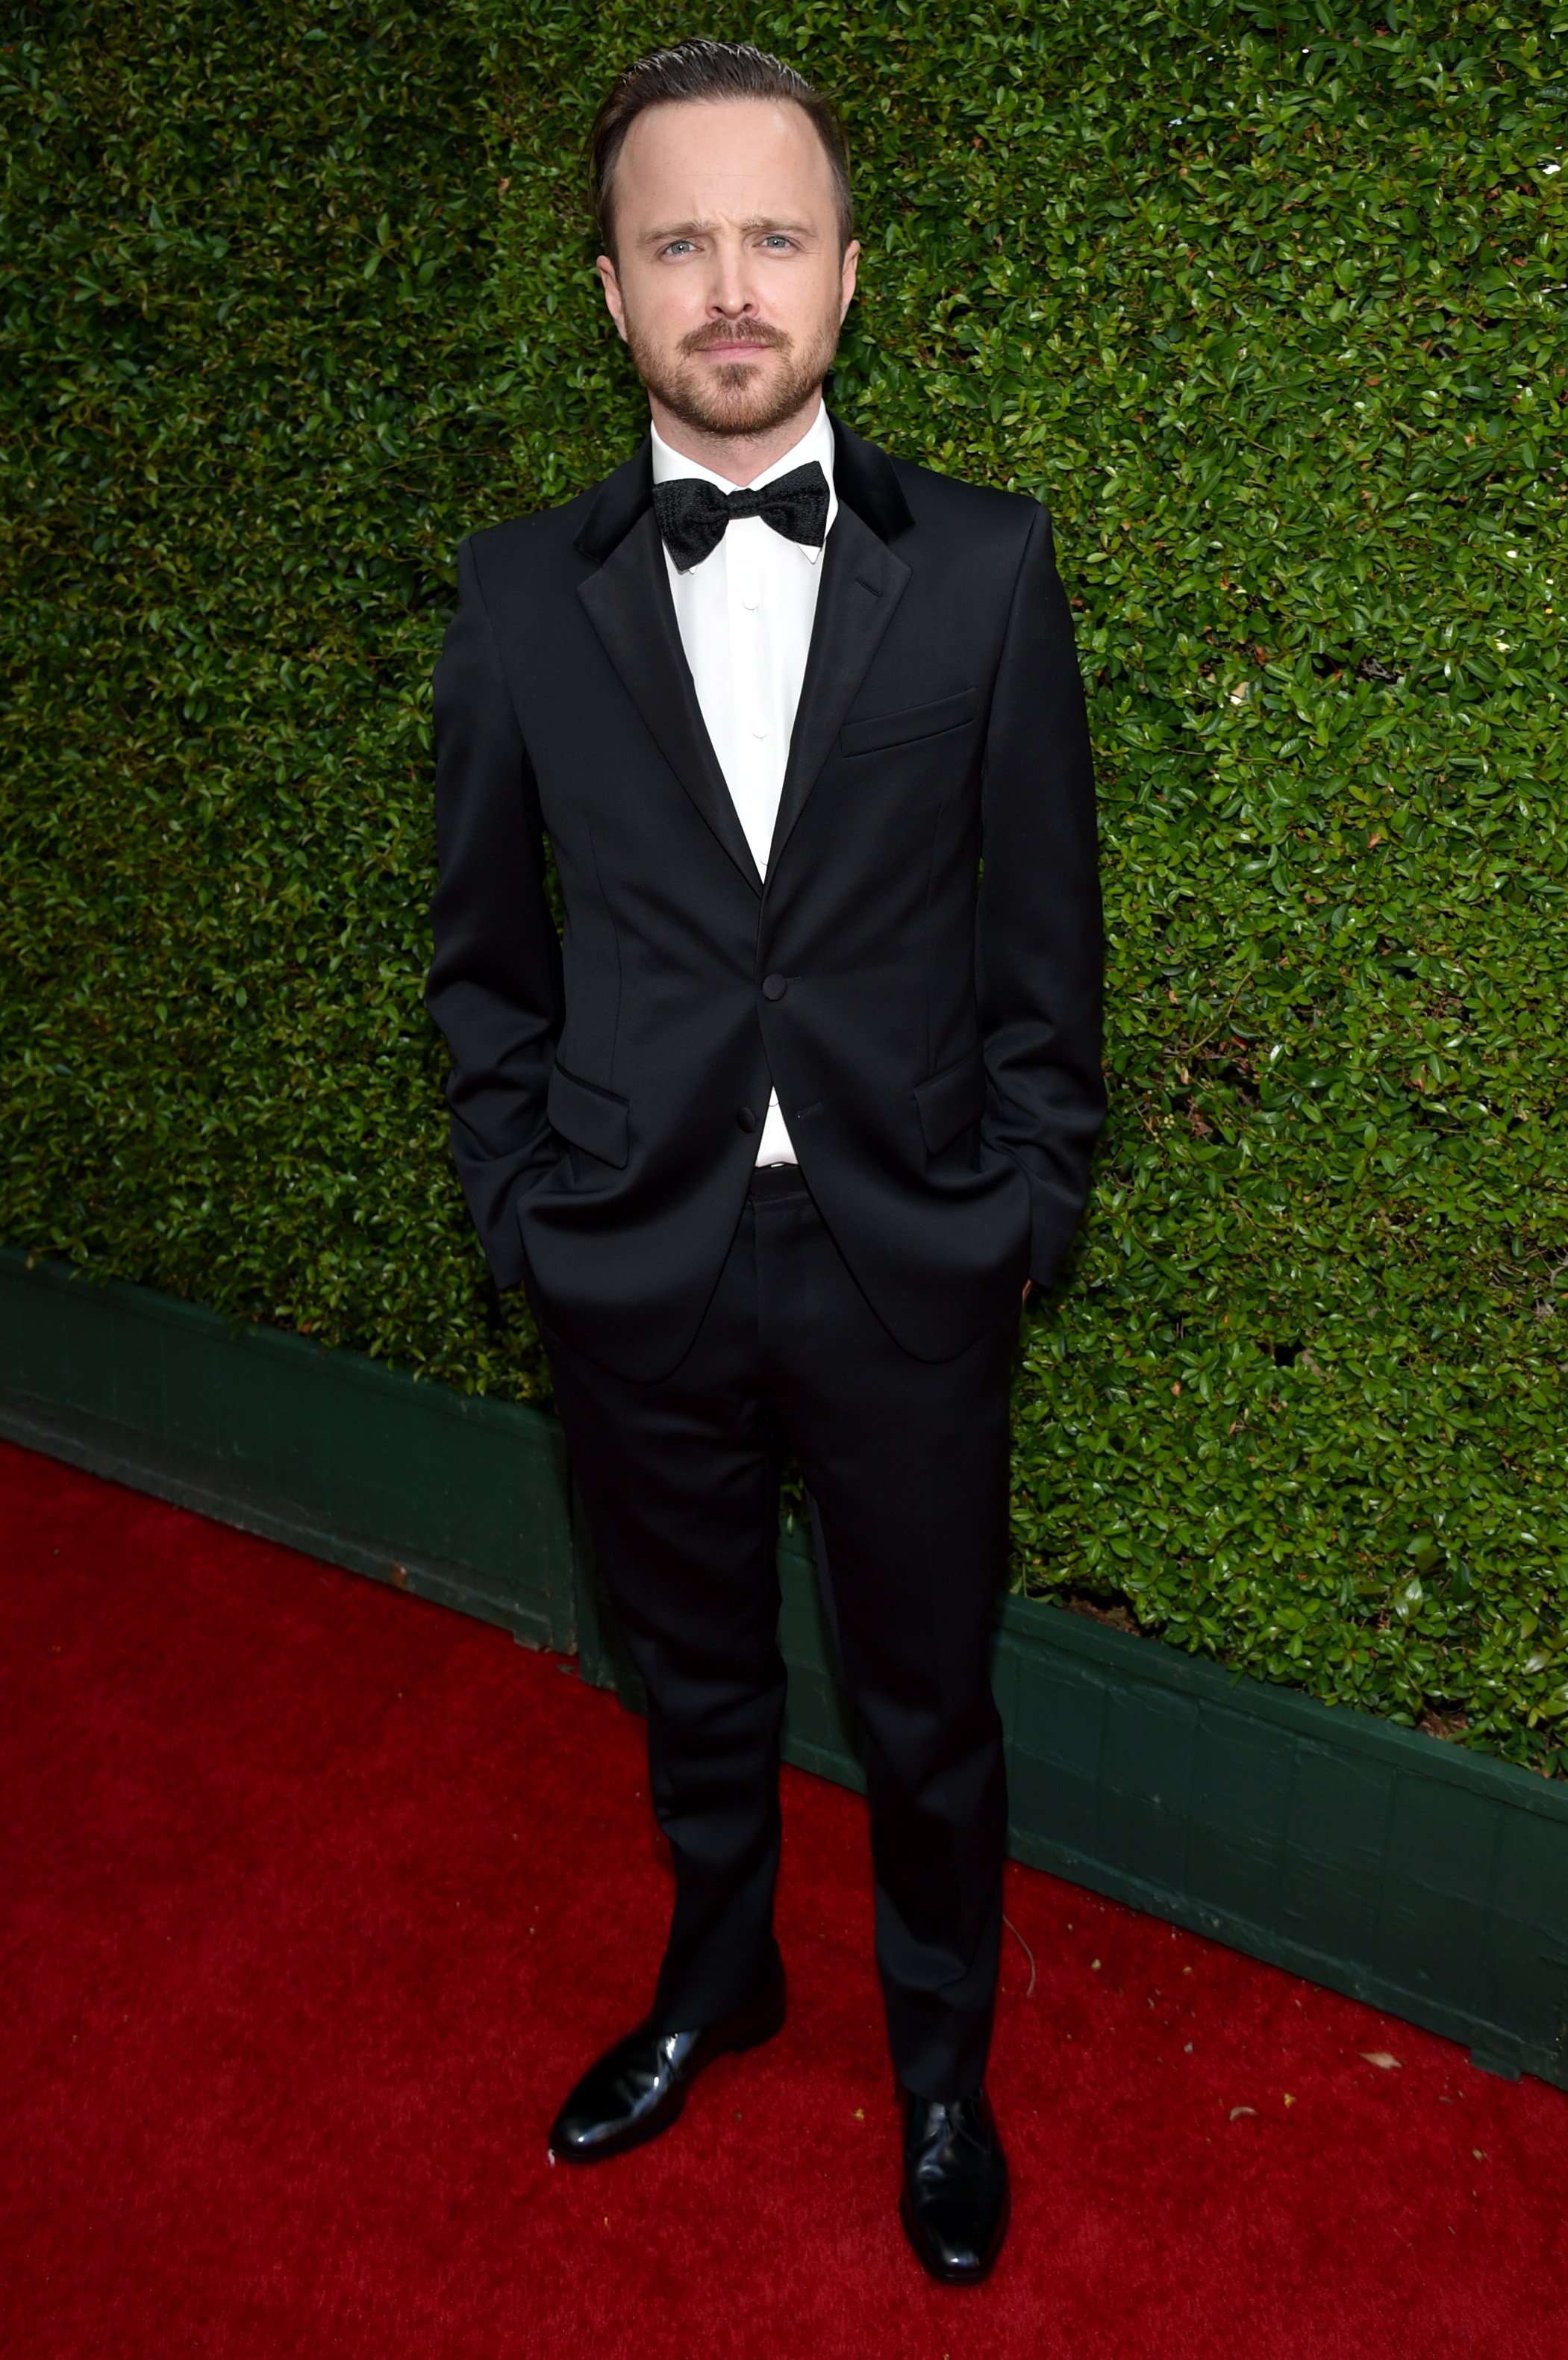 Aaron Paul arrives at the 66th Primetime Emmy Awards at the Nokia Theatre L.A. Live on Monday, Aug. 25, 2014, in Los Angeles.